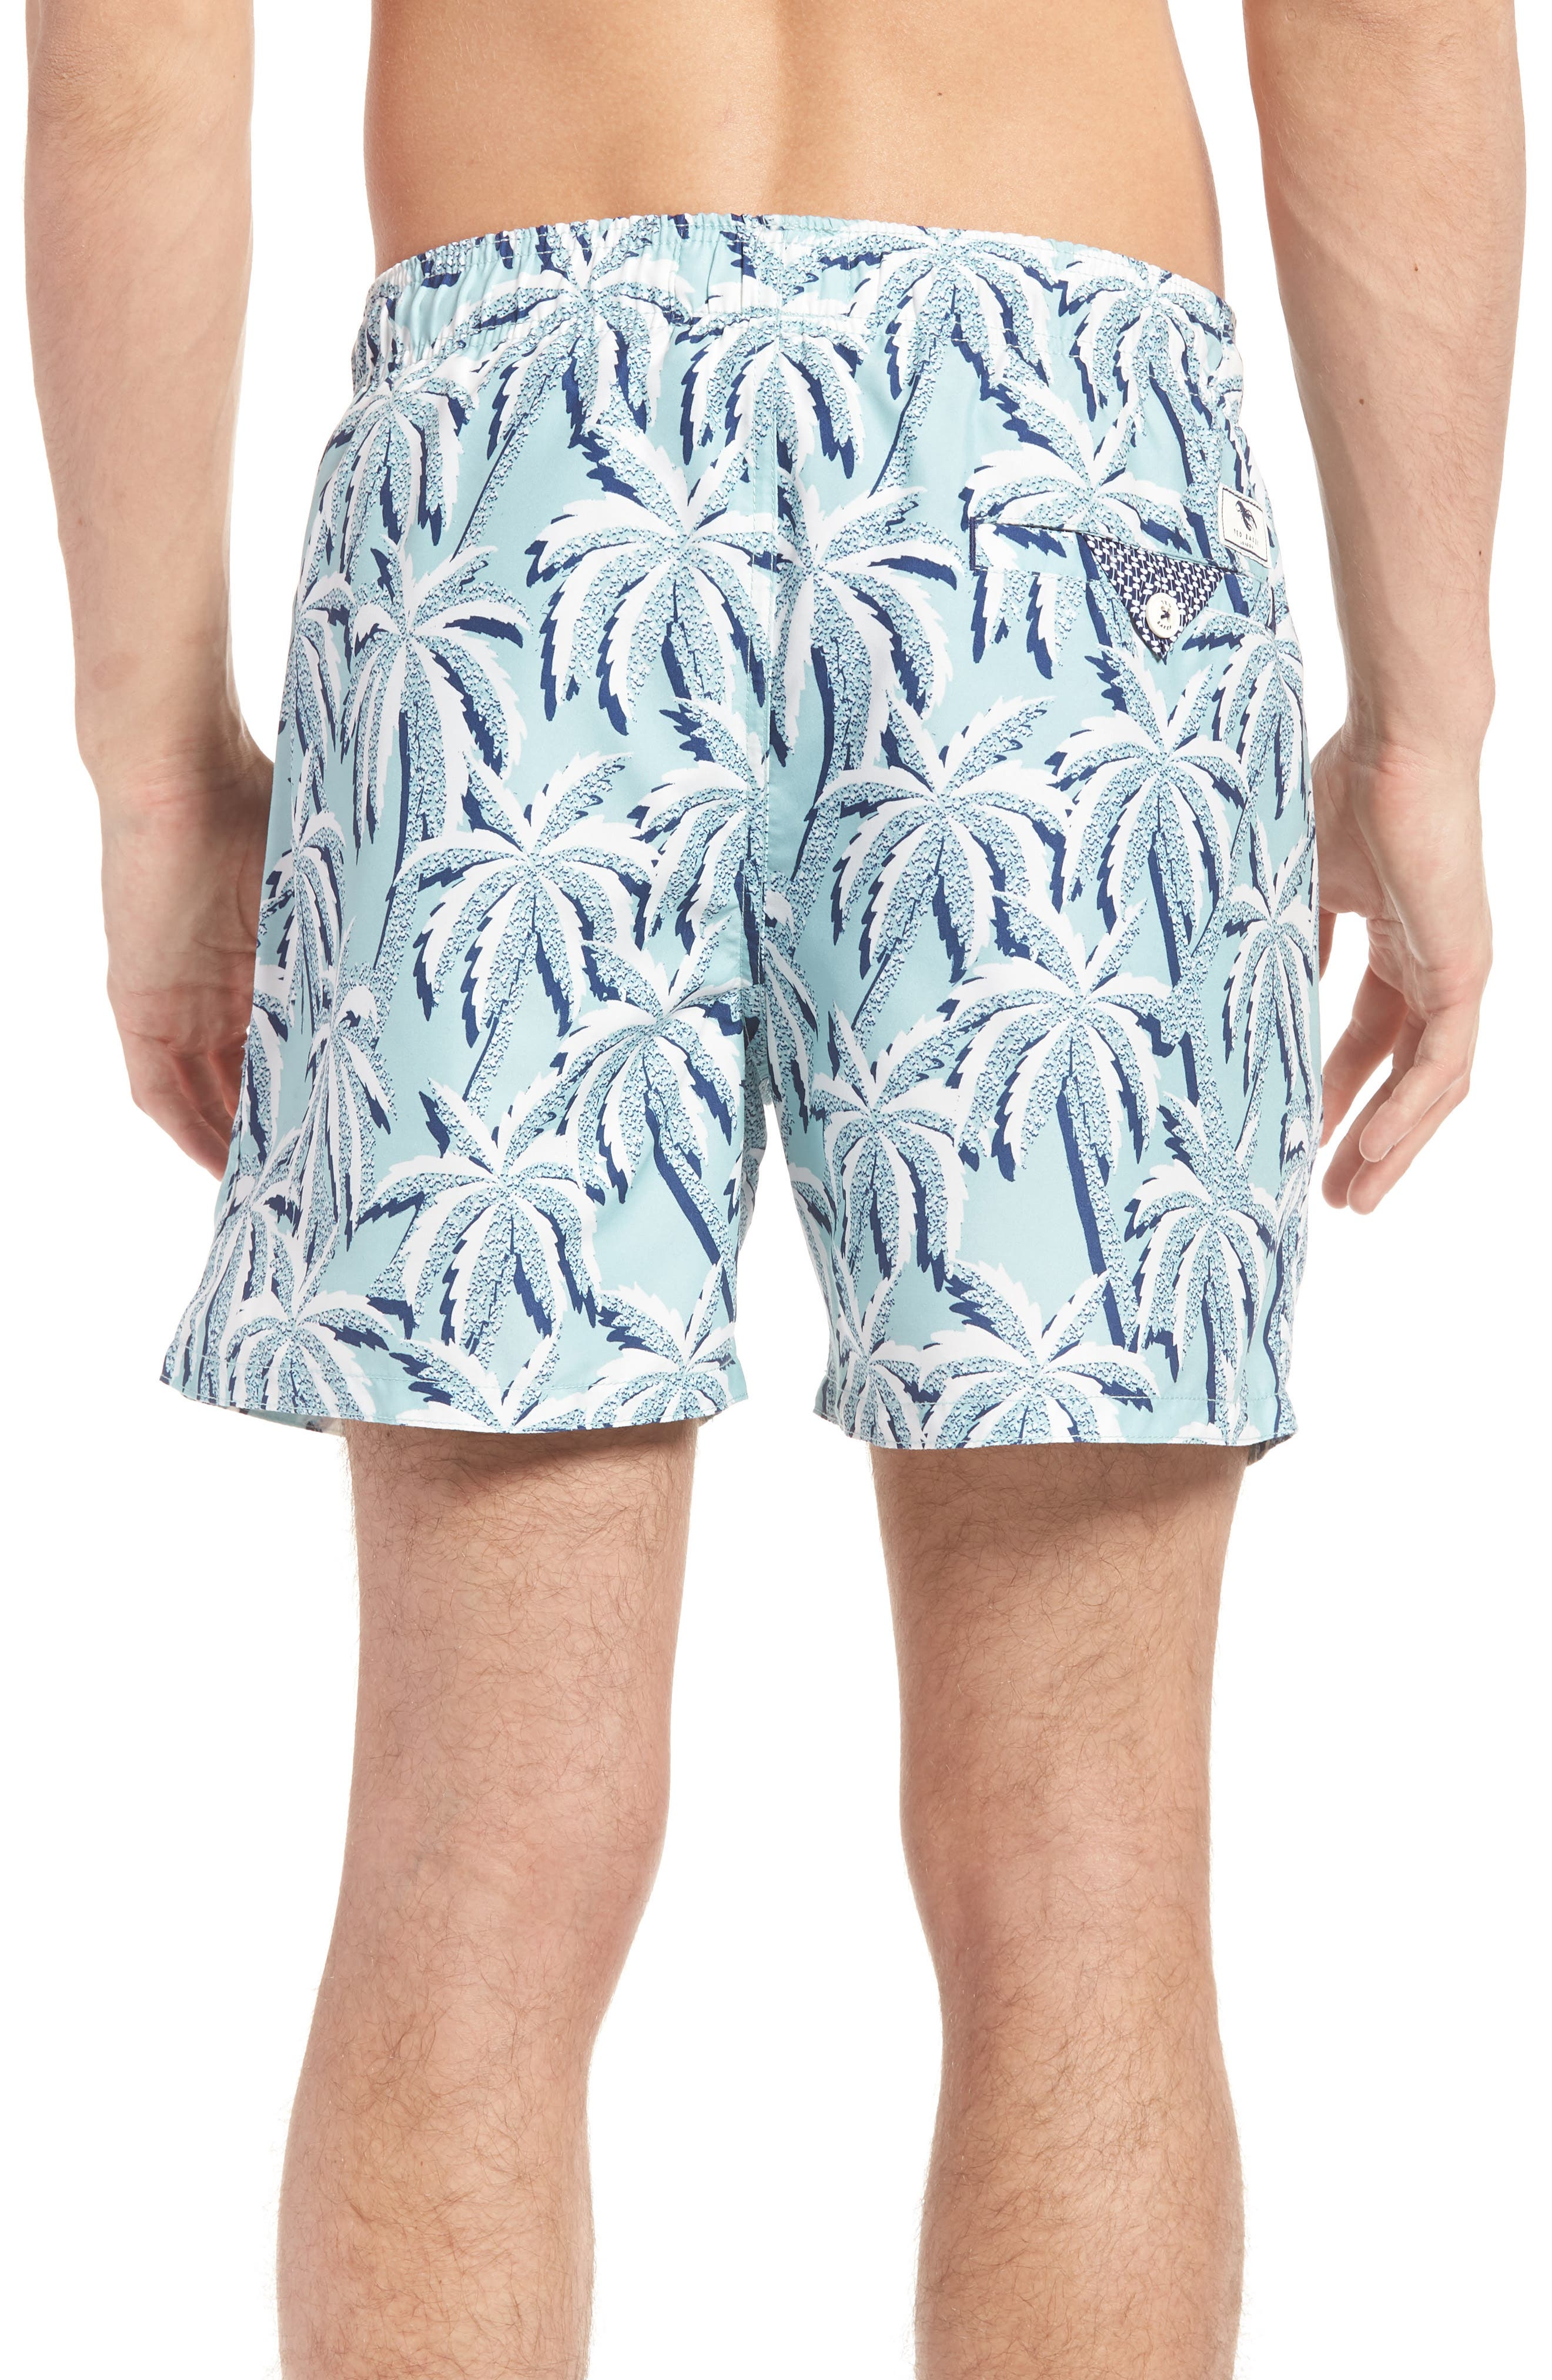 Hoppah Palm Print Swim Shorts,                             Alternate thumbnail 2, color,                             330